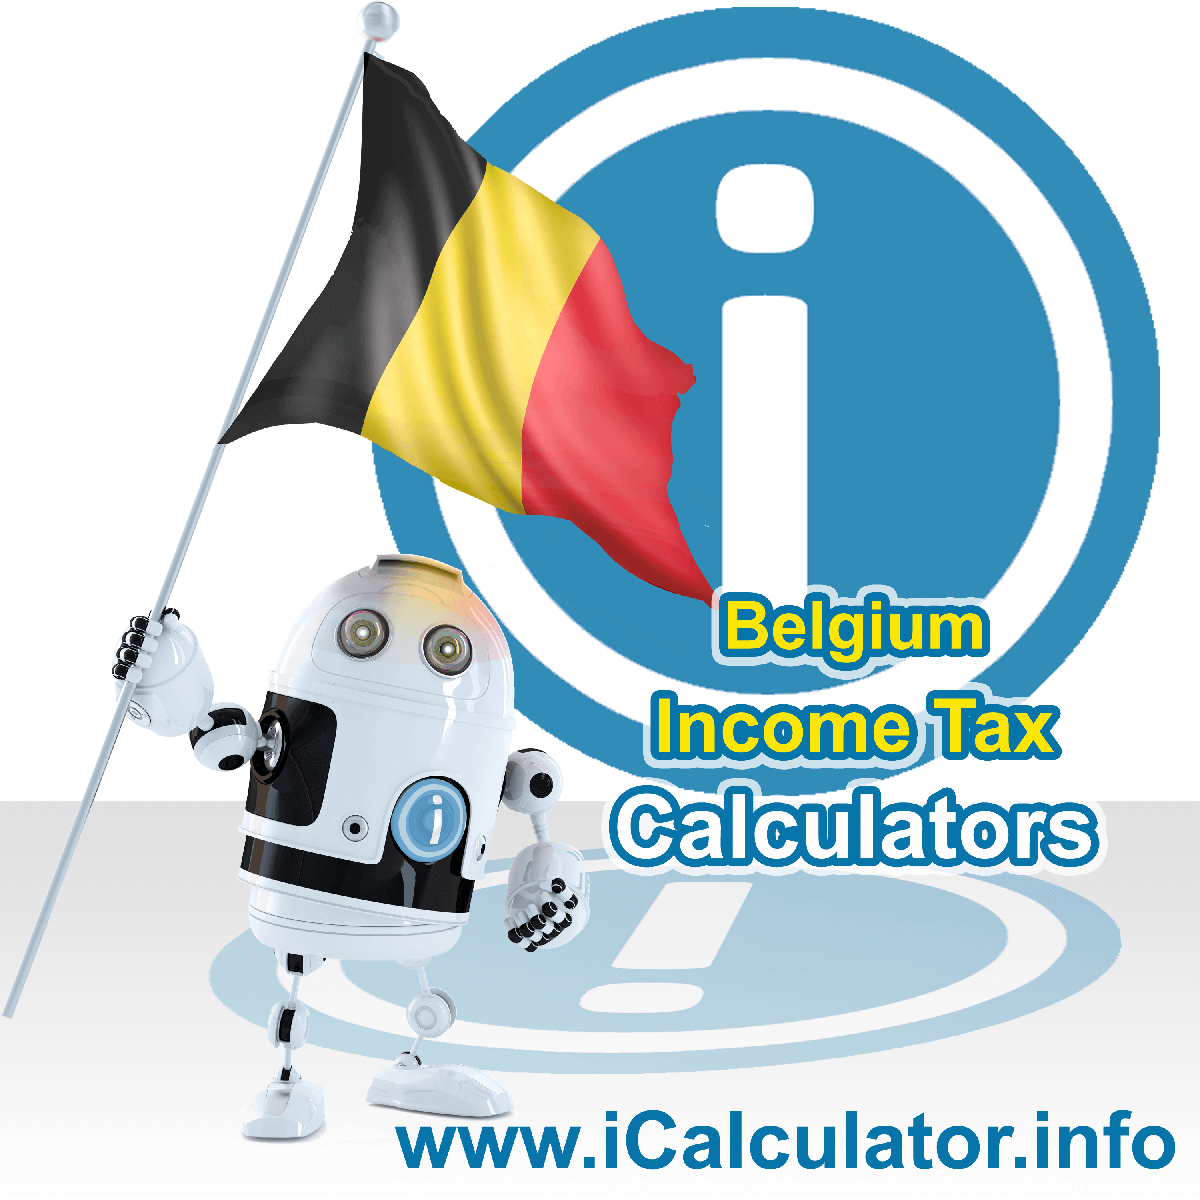 Belgium Income Tax Calculator. This image shows a new employer in Belgium calculating the annual payroll costs based on multiple payroll payments in one year in Belgium using the Belgium income tax calculator to understand their payroll costs in Belgium in 2021